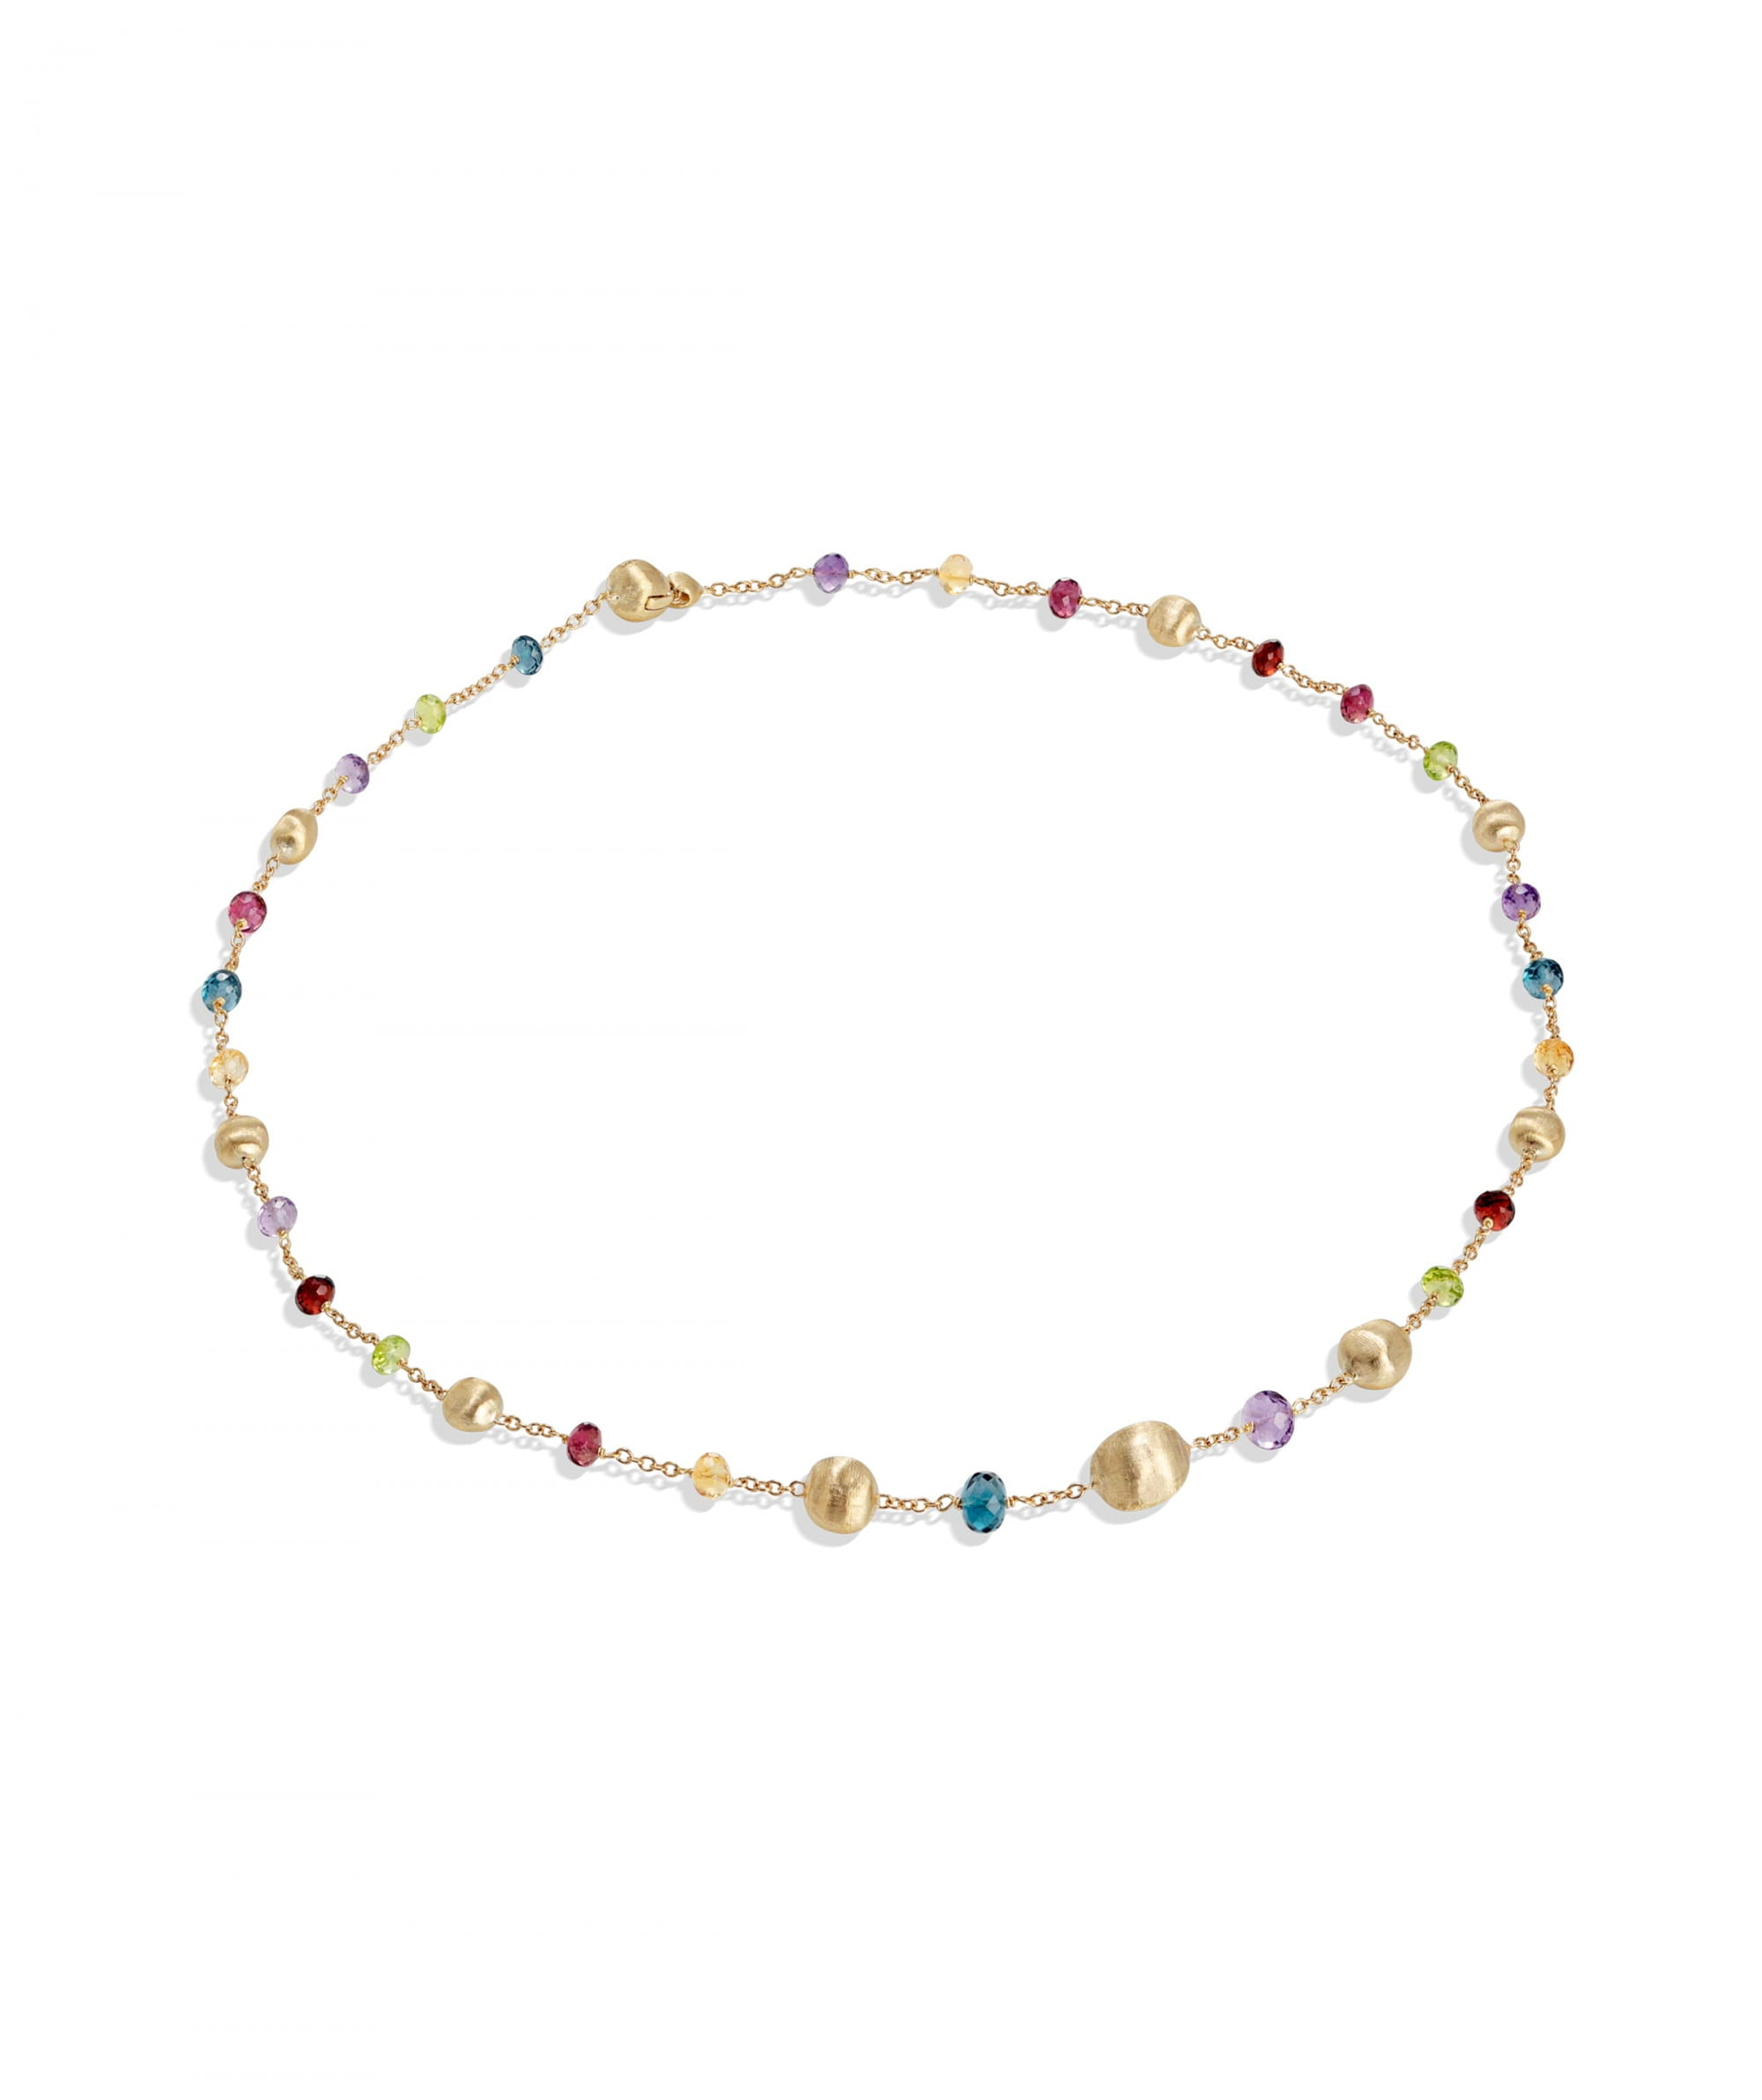 Africa Gemstone Necklace in 18k Yellow Gold with Mixed Gemstones Short - Orsini Jewellers NZ